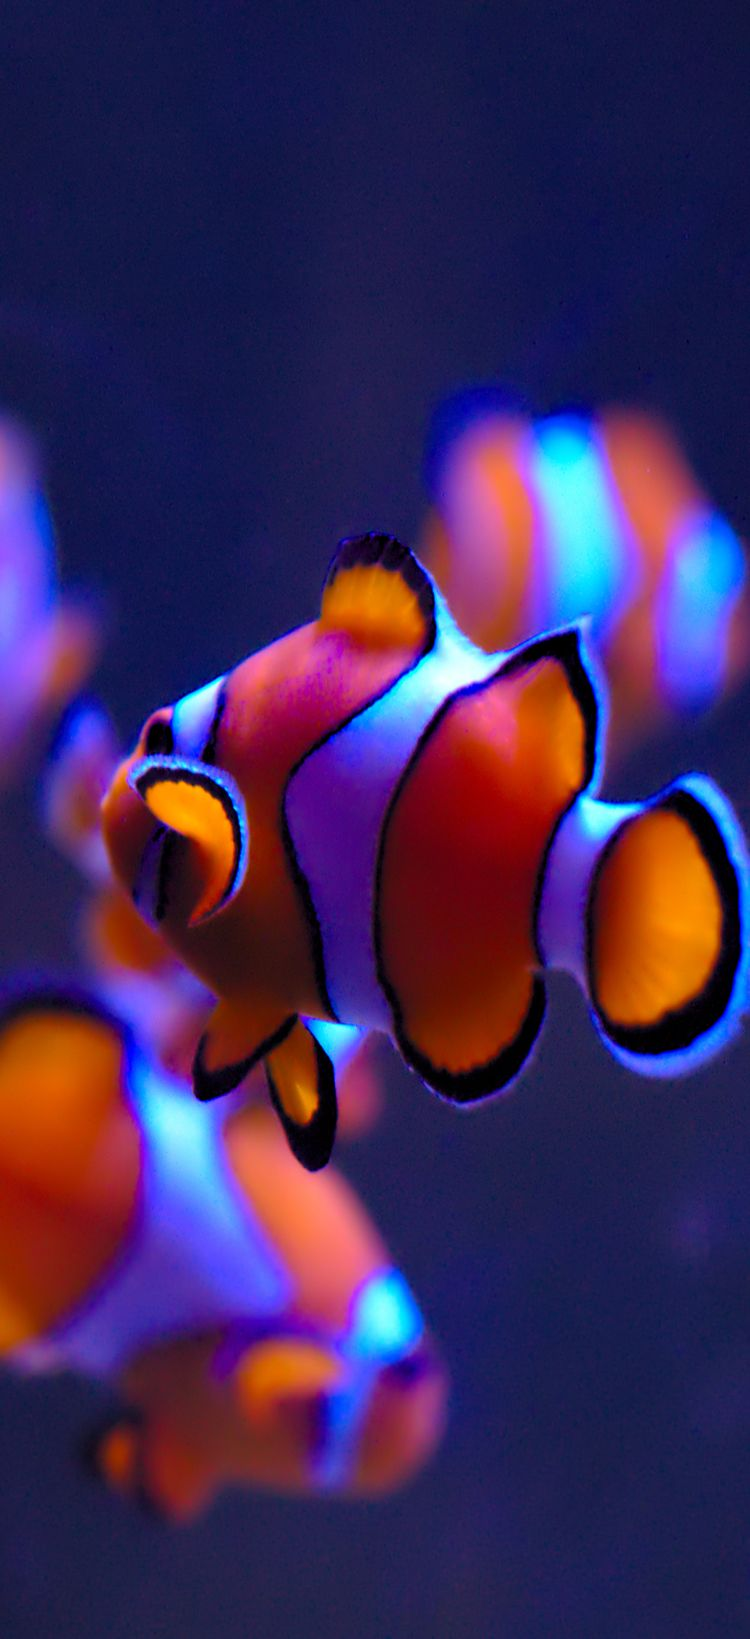 original iphone wallpaper ios 11 clownfish orange blue water apple wallpaper 12743